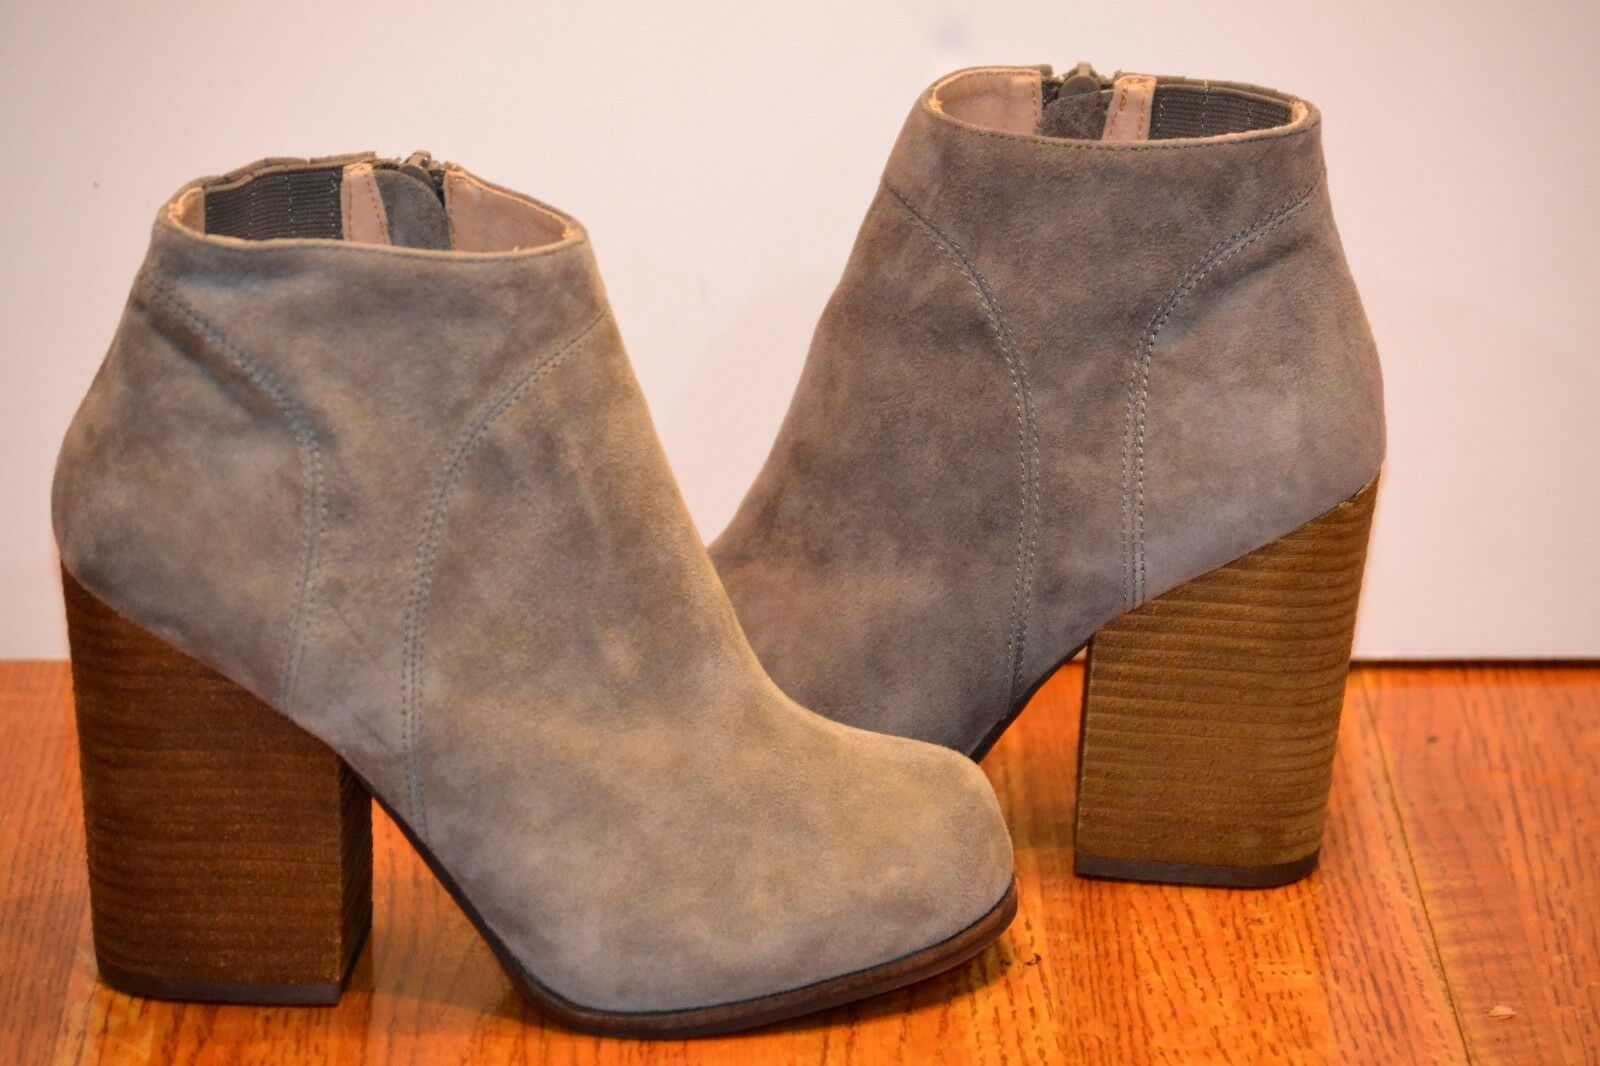 JEFFREY CAMPBELL HANGER BOOTIES 7.5 Gray Suede Ankle Boots Chunky Heel Shoes